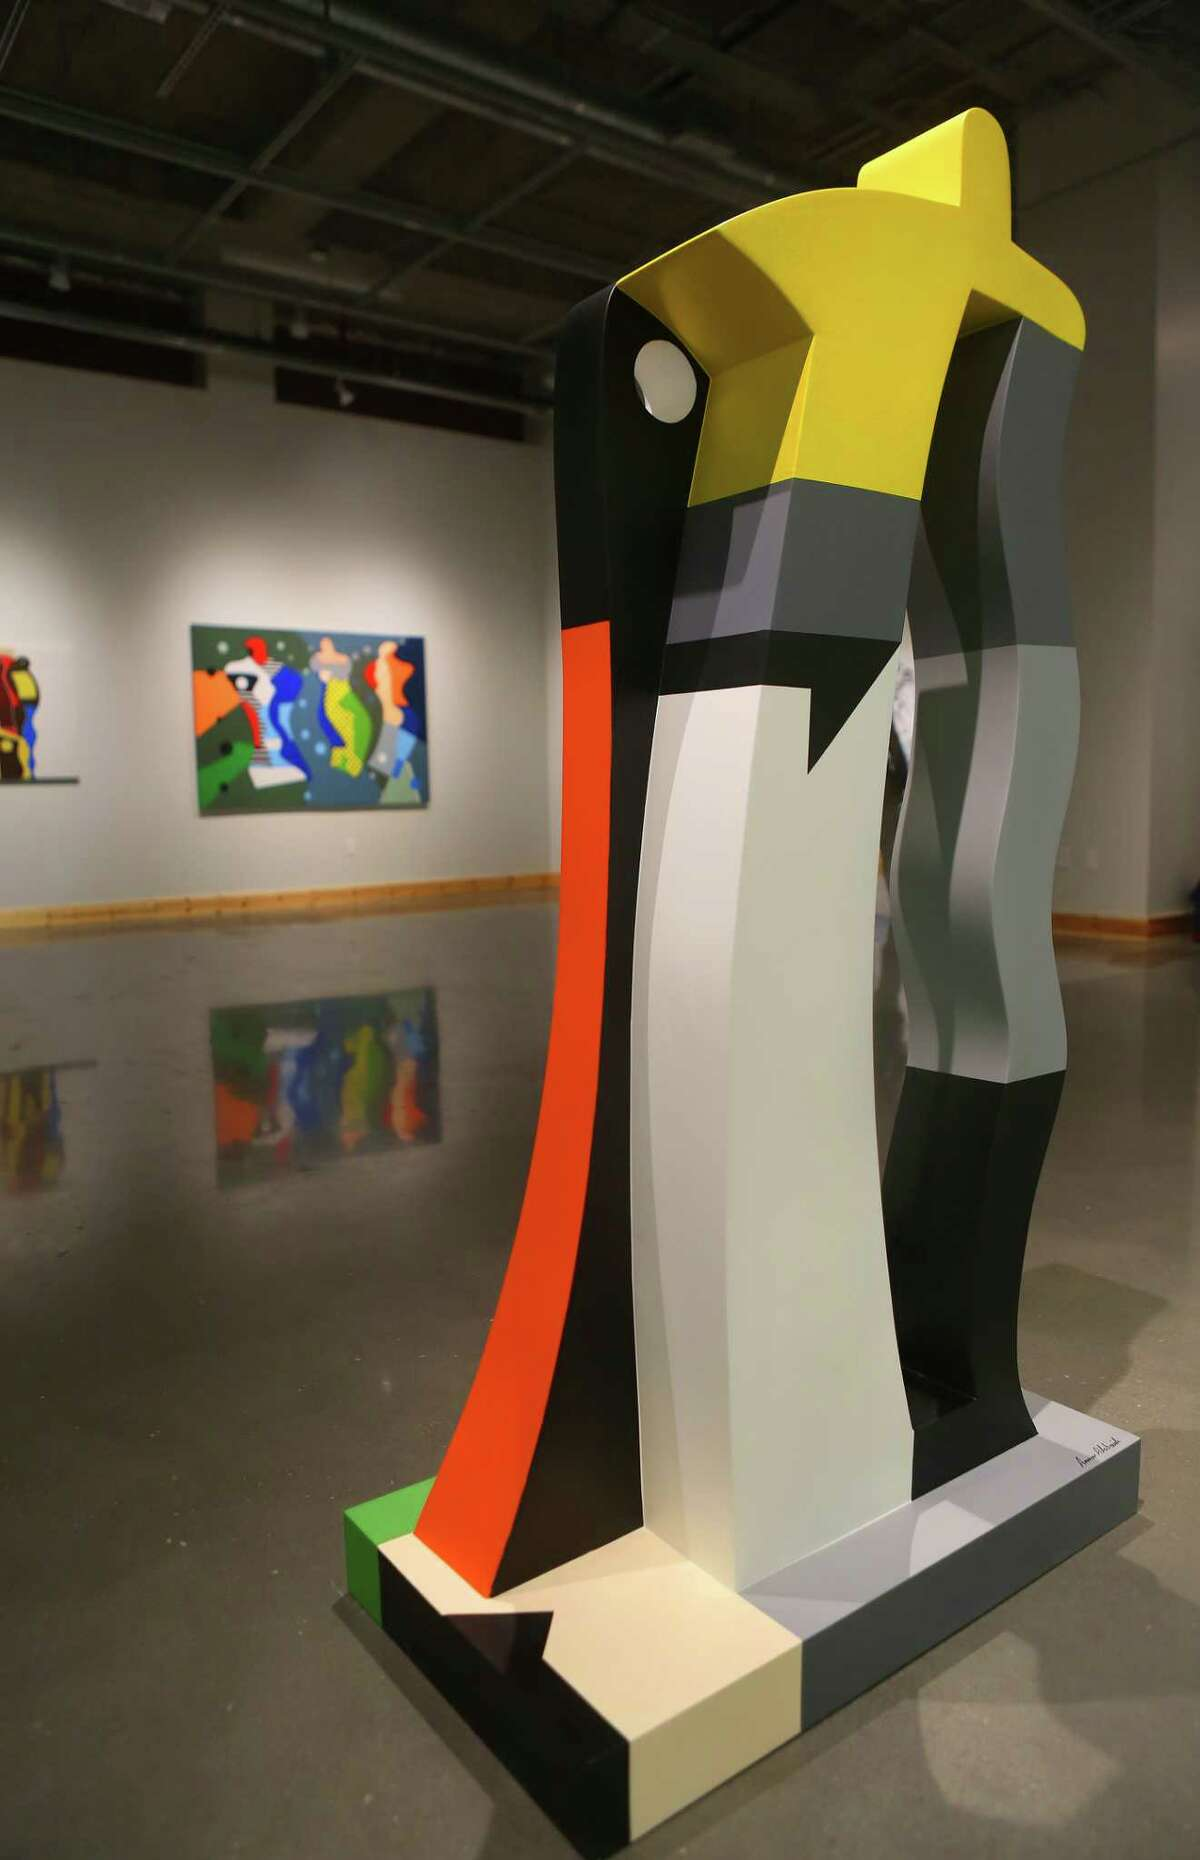 A fiberglass sculpture by artist Ammar Alobaidi stands as part of his show, A Tale of the City, at the O'Kane Gallery at the University of Houston Downtown, Thursday, Feb. 9, 2017, in Houston. Alobaidi recently moved to Houston as a refugee after living in Jordan for years since leaving his native Iraq. ( Mark Mulligan / Houston Chronicle )